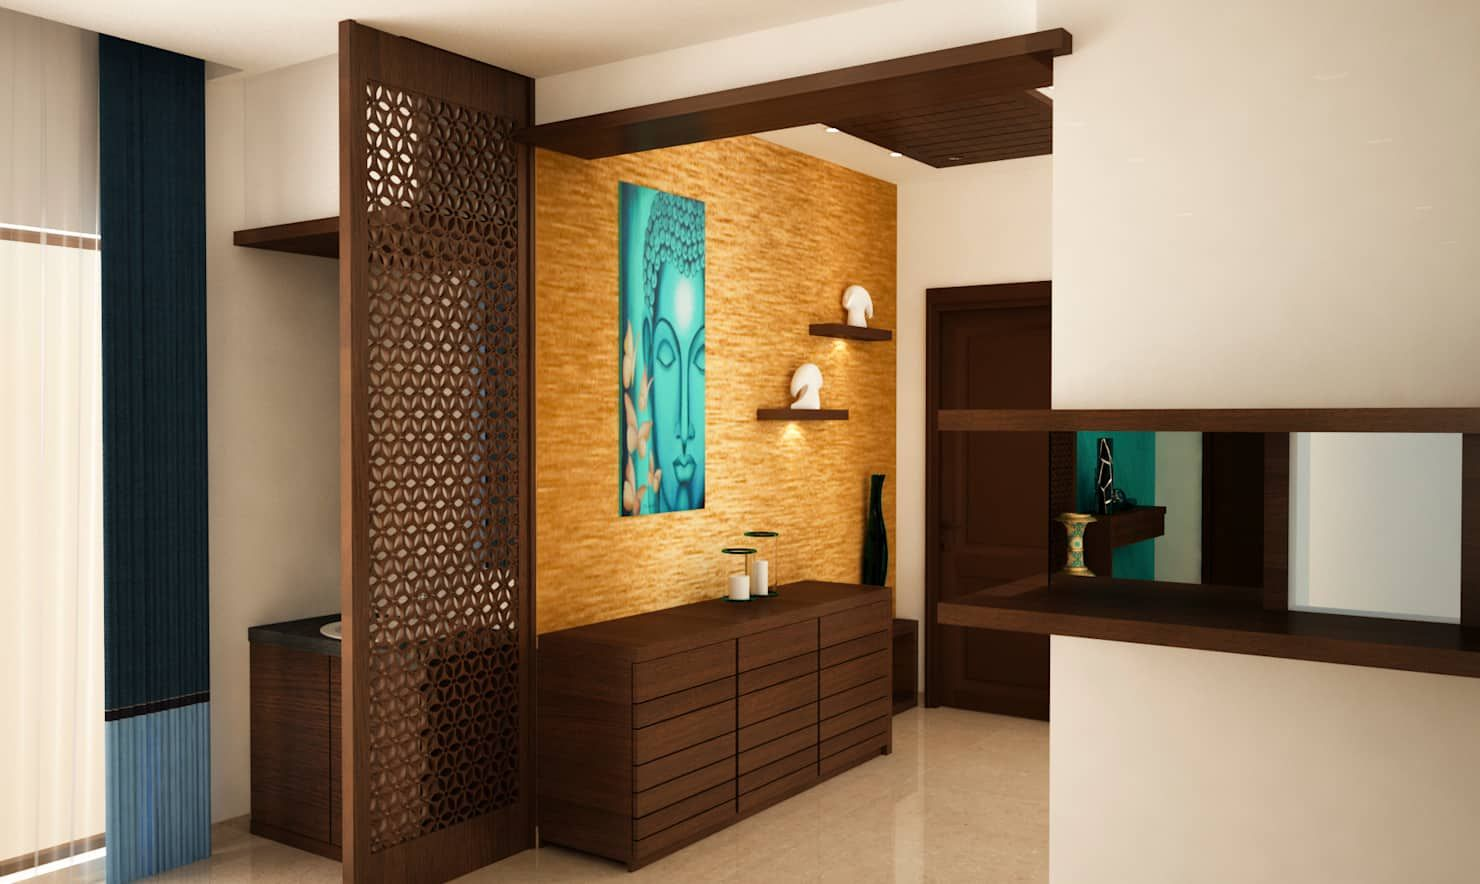 Hand wash area and crockery unit modern dining room by ...